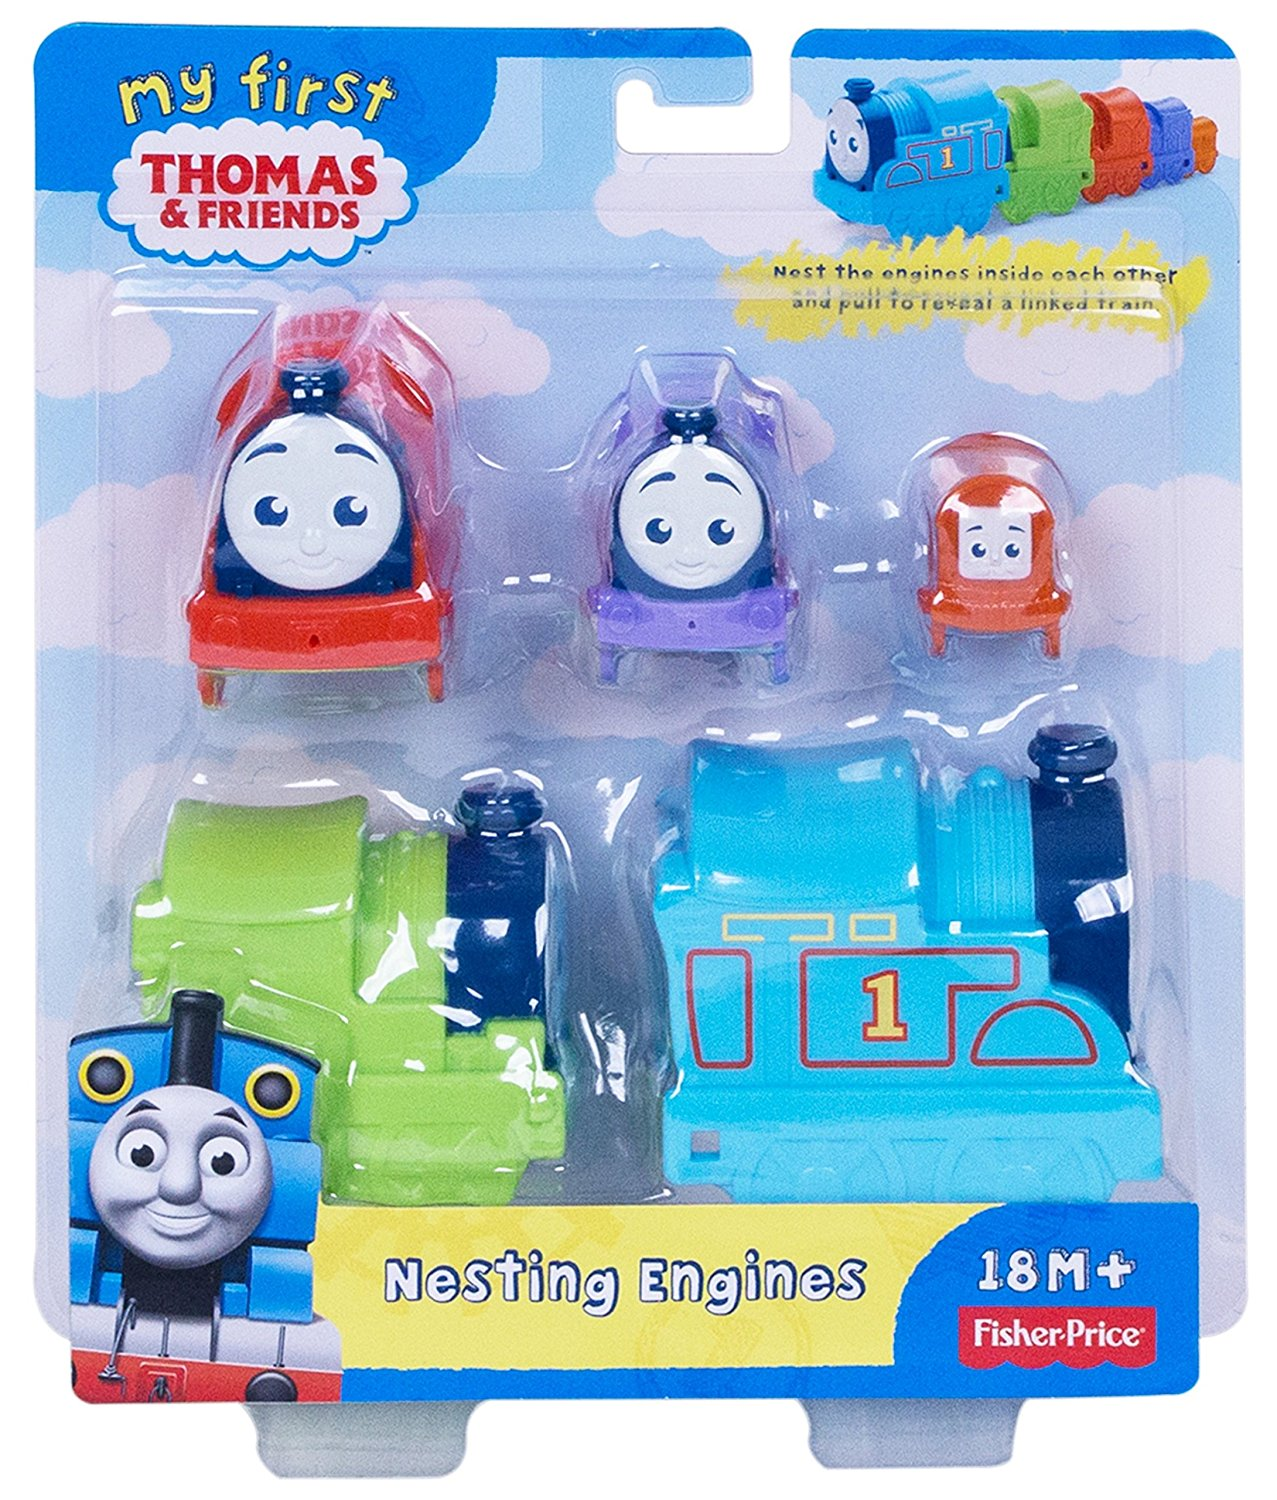 Fisher Price My First Thomas & Friends™ Nesting Engines DVR11